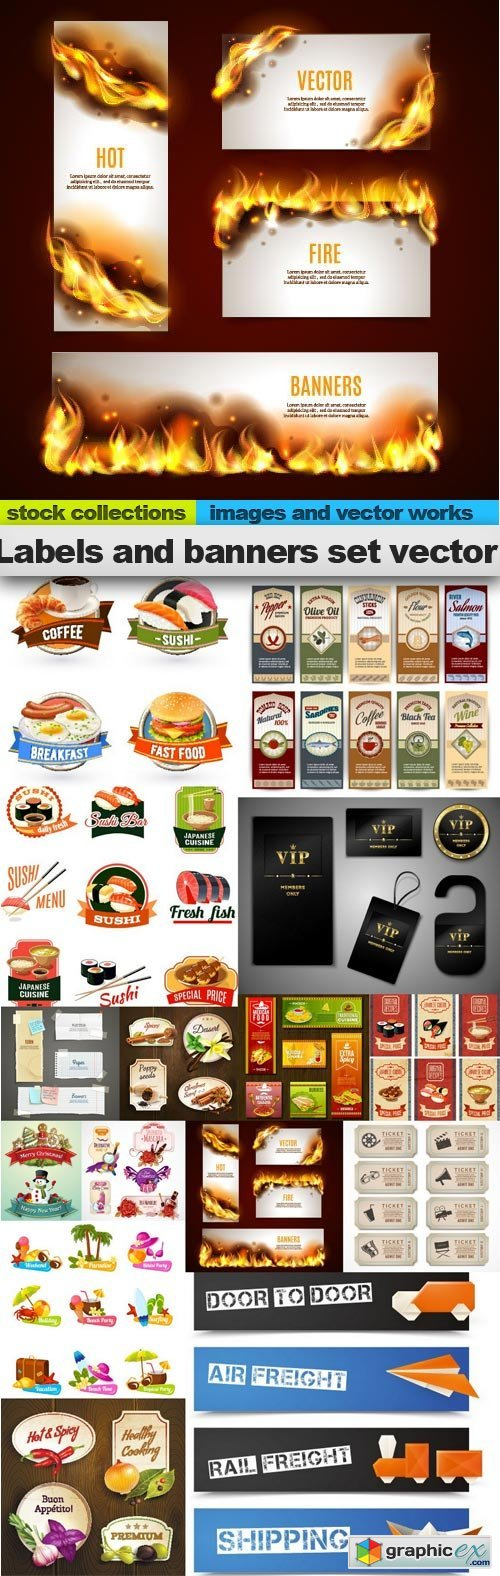 Labels and banners set vector, 15 xEPS